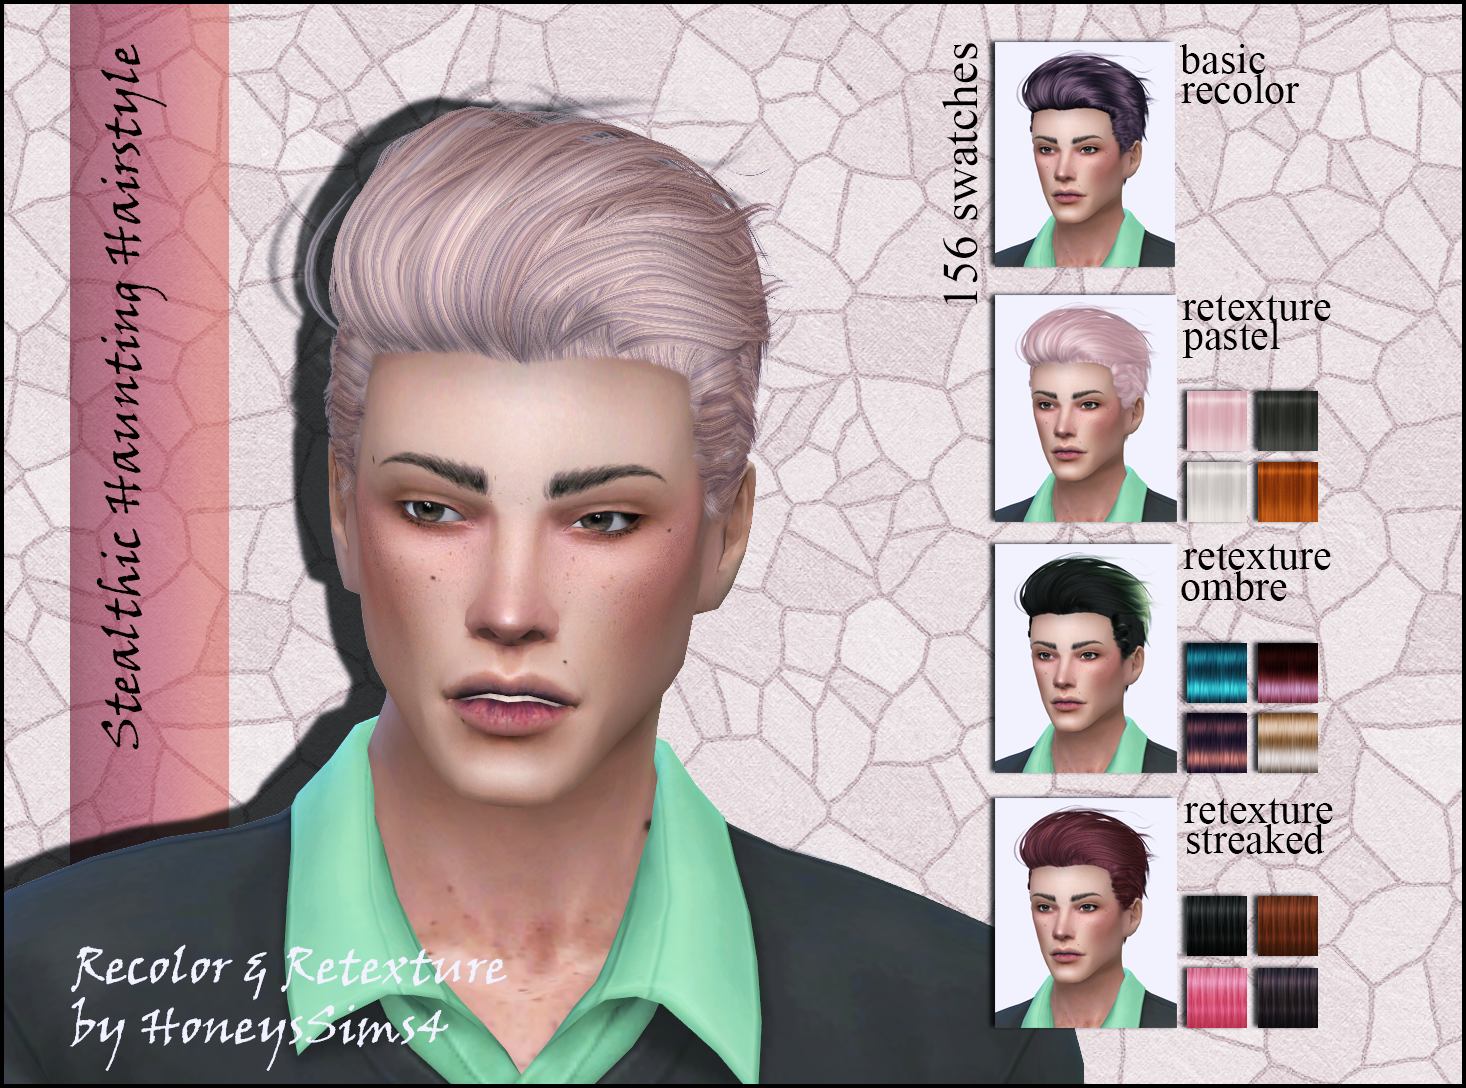 Sims 3 male hair recolor retexture by HoneysSims3 Mesh by